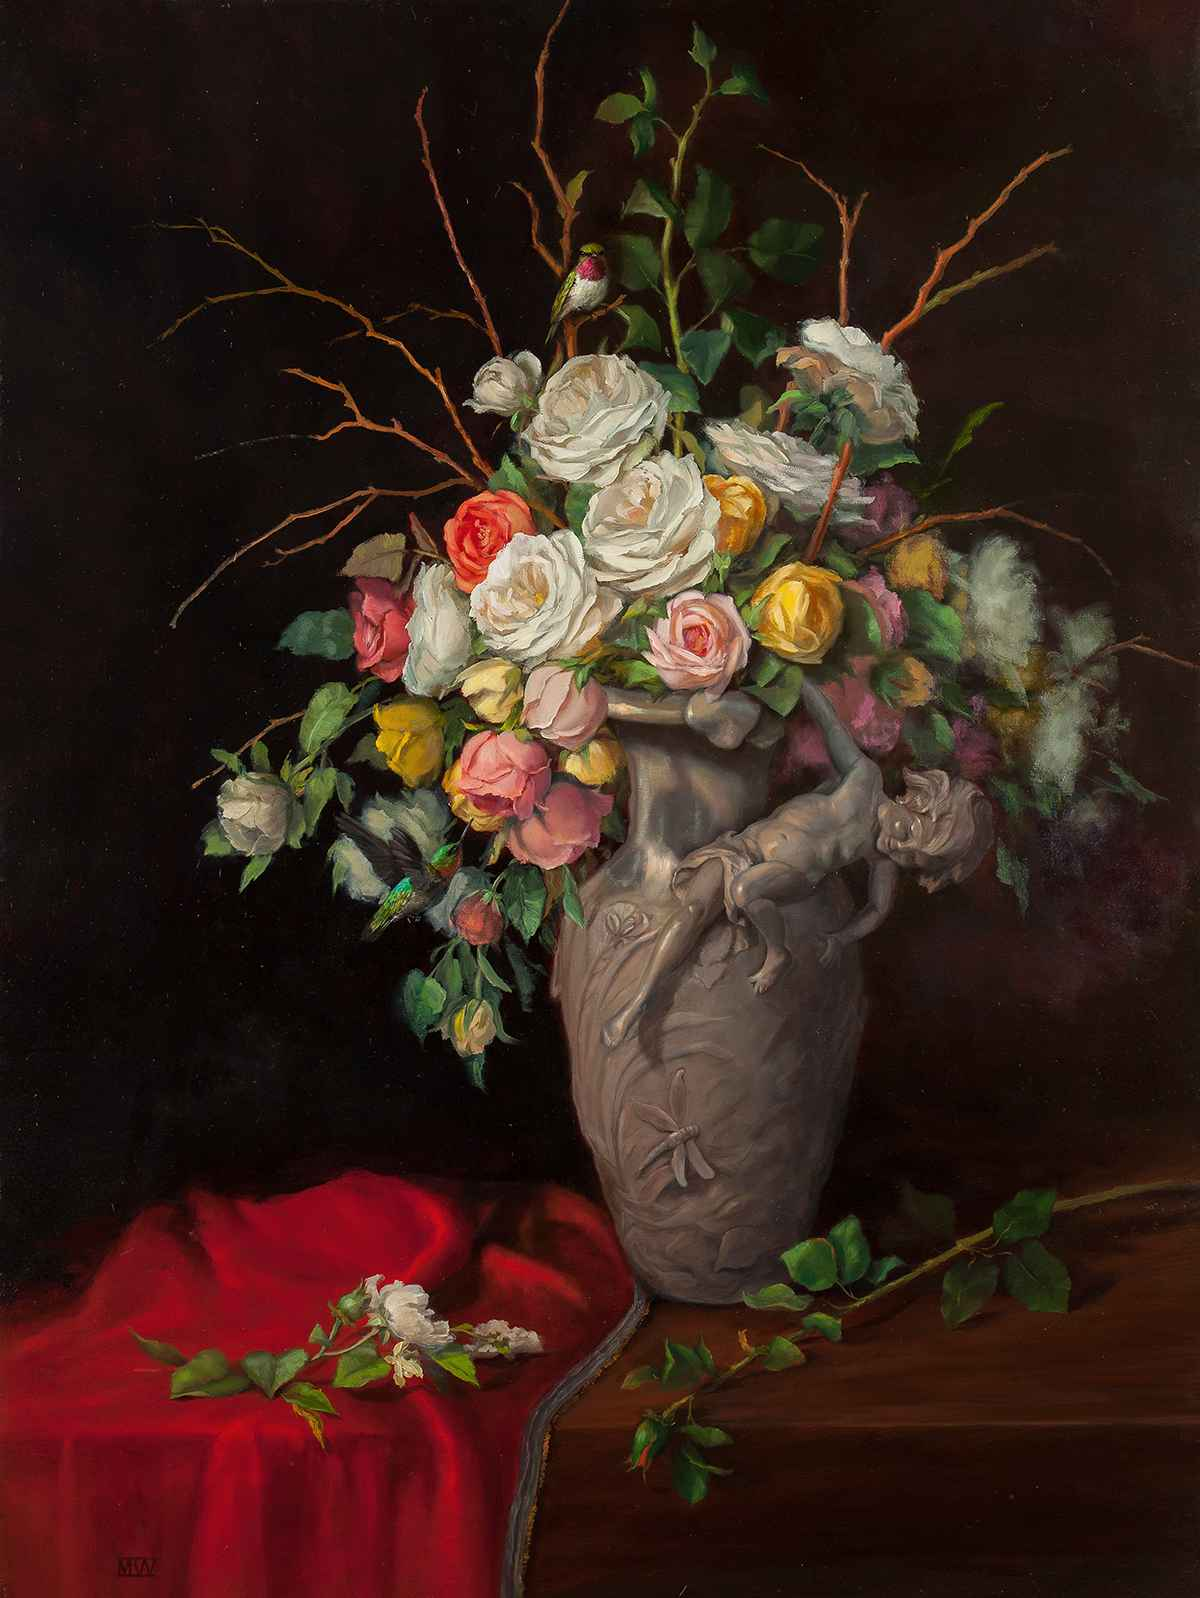 Italian Vase and Roses by  Mary Kay  West  - Masterpiece Online